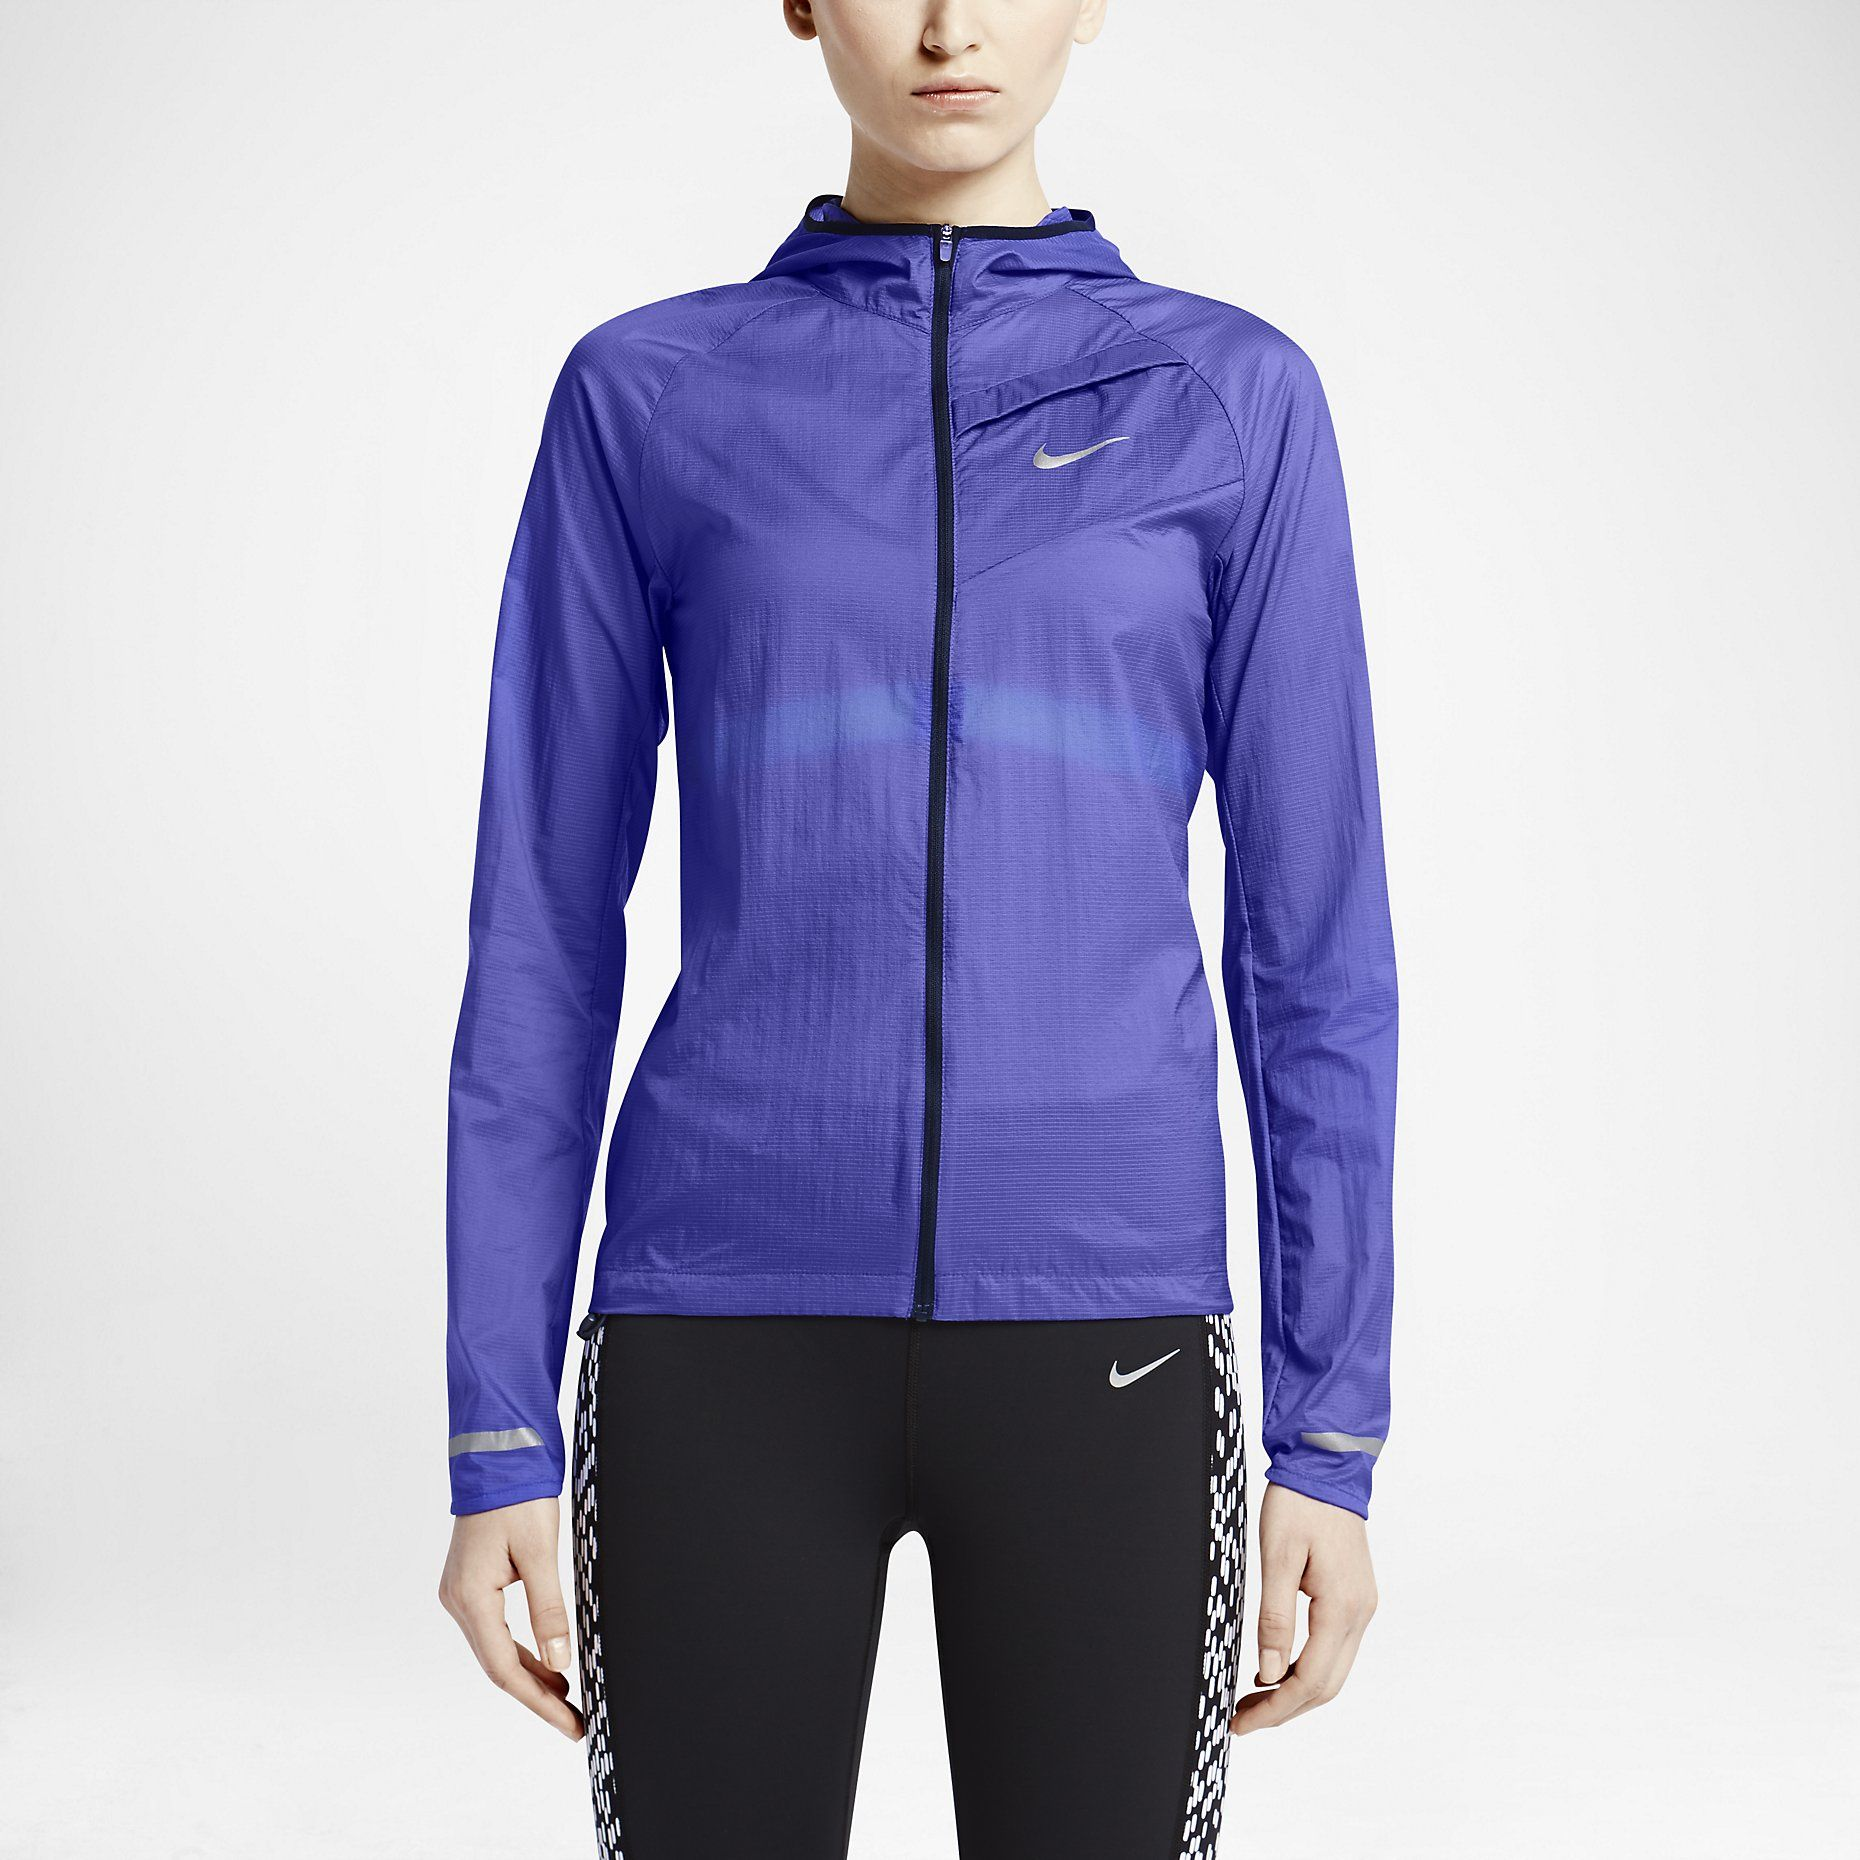 a3933fd6c0b5 Nike Impossibly Light Women s Running Jacket in sheer nylon with hood +  reflective details. Packs into its own chest pocket.